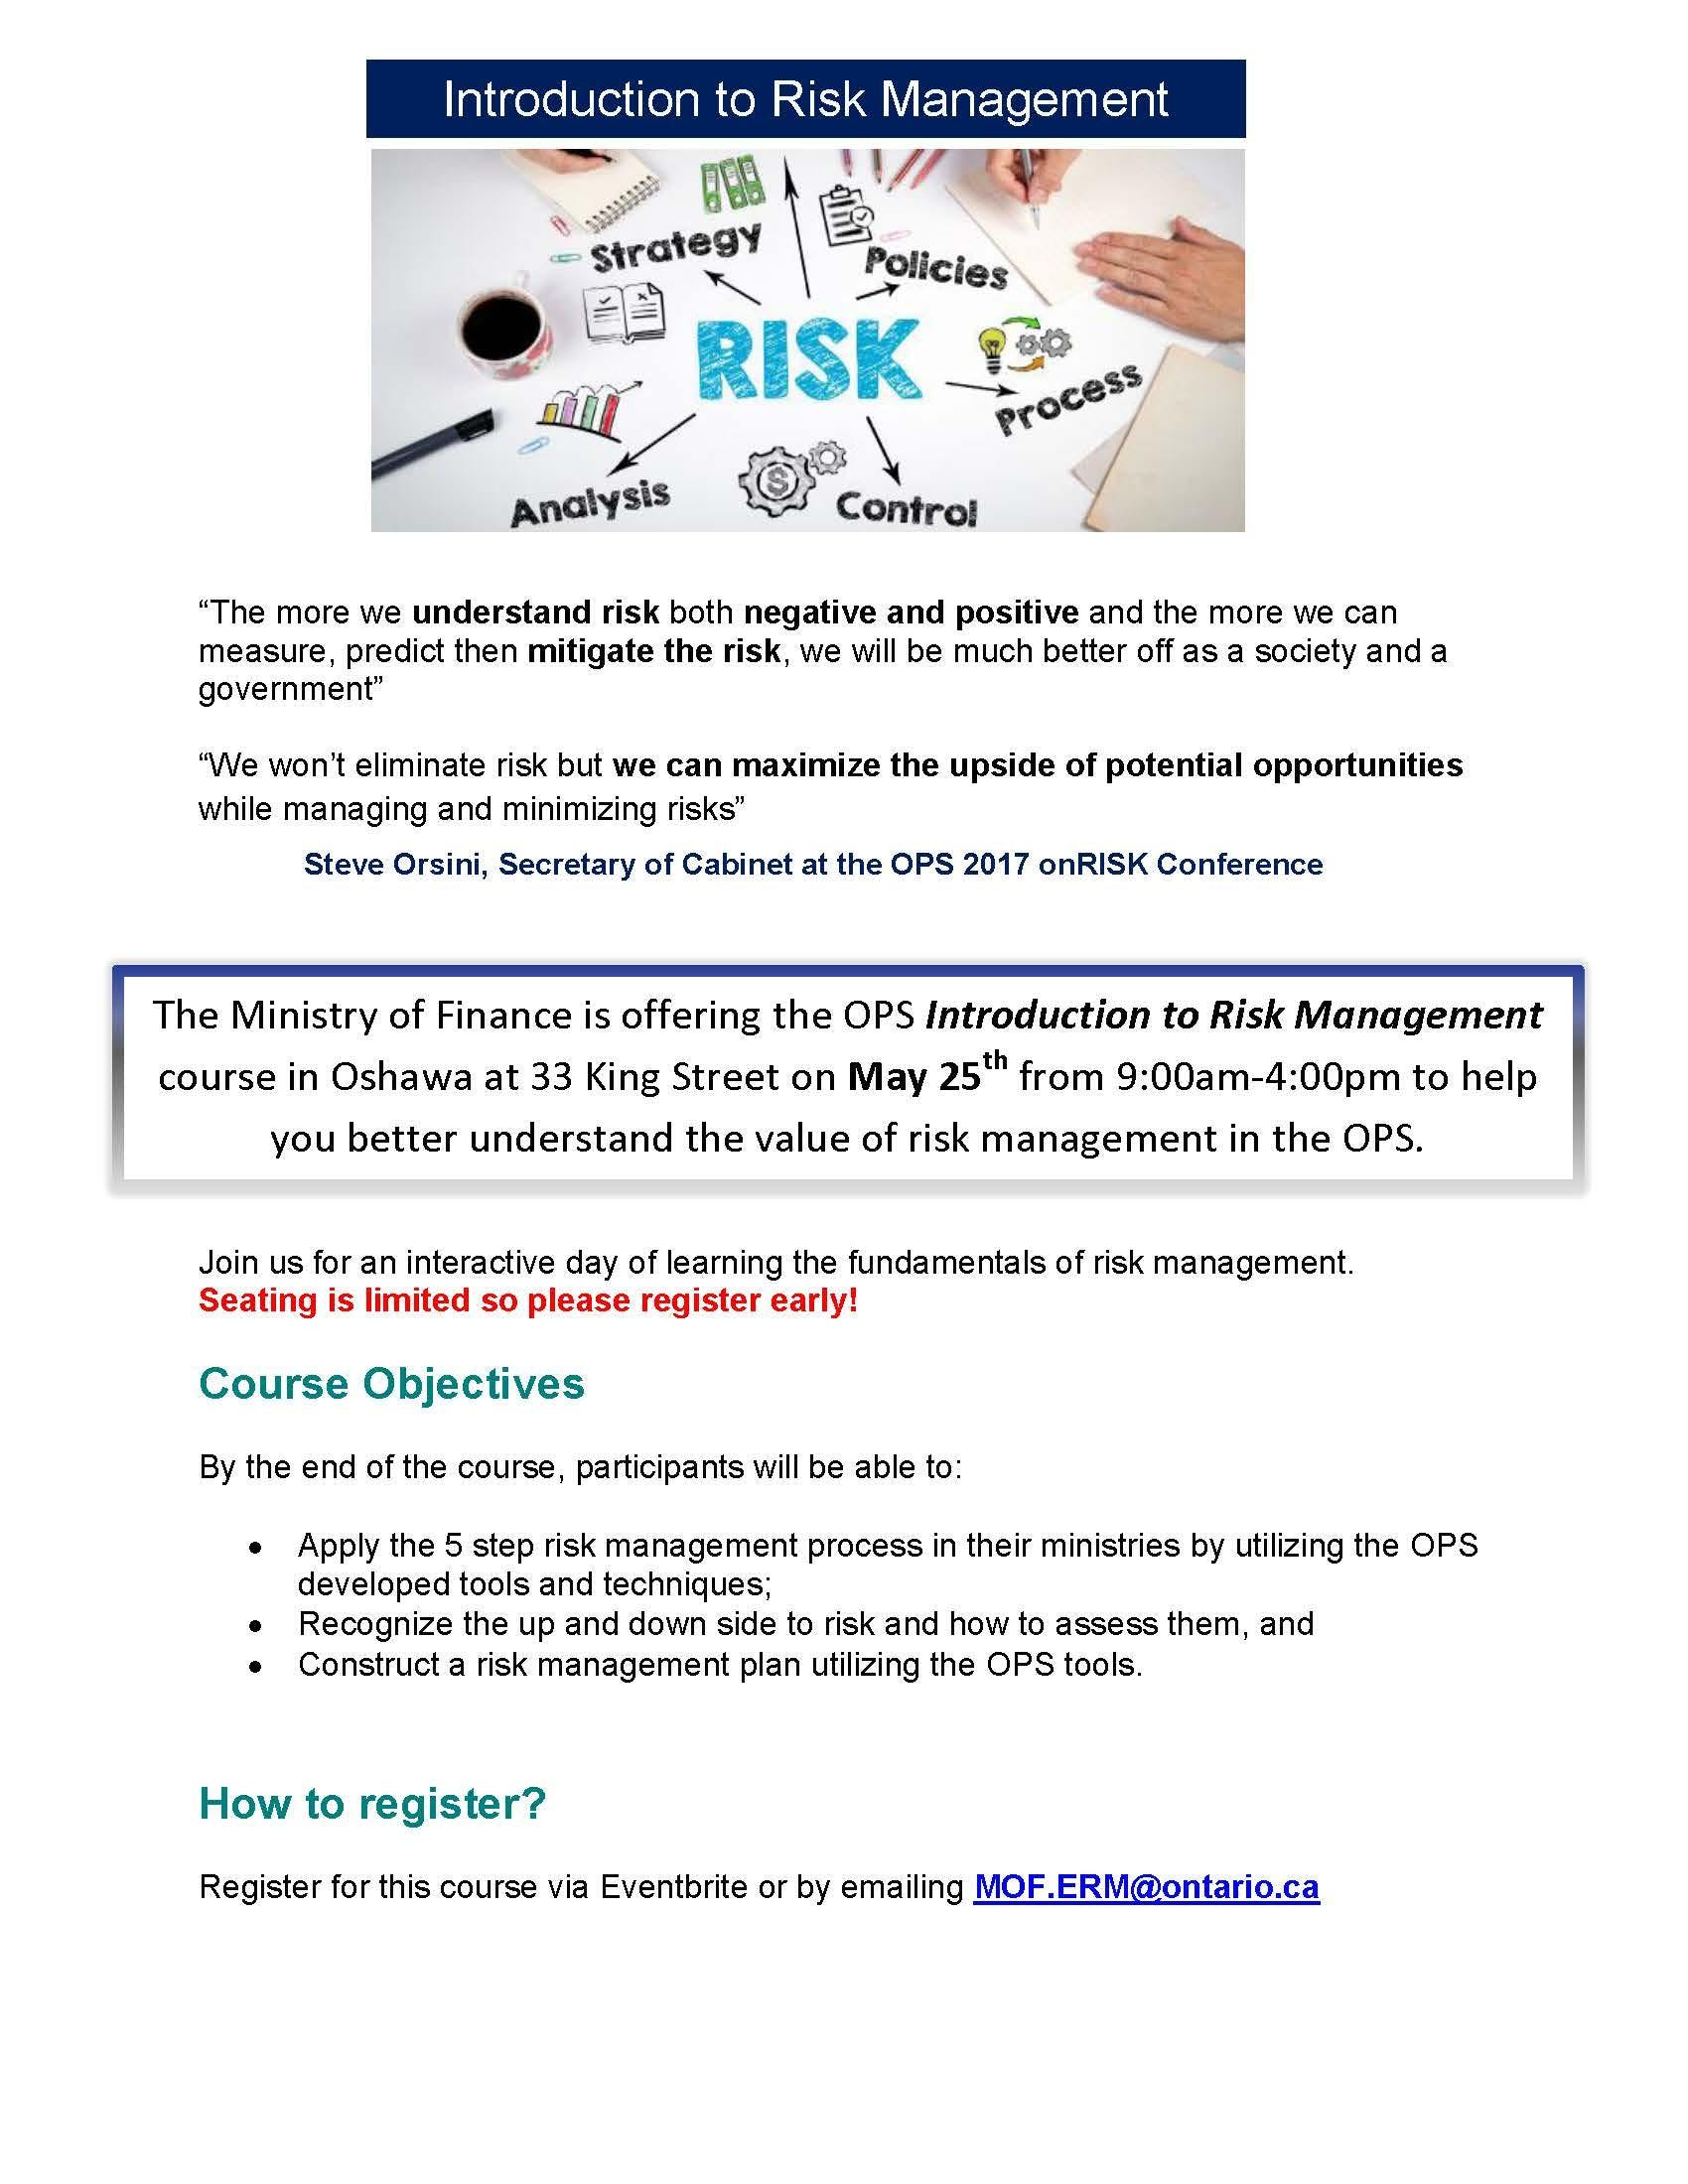 Introduction to Risk Management -June 22nd